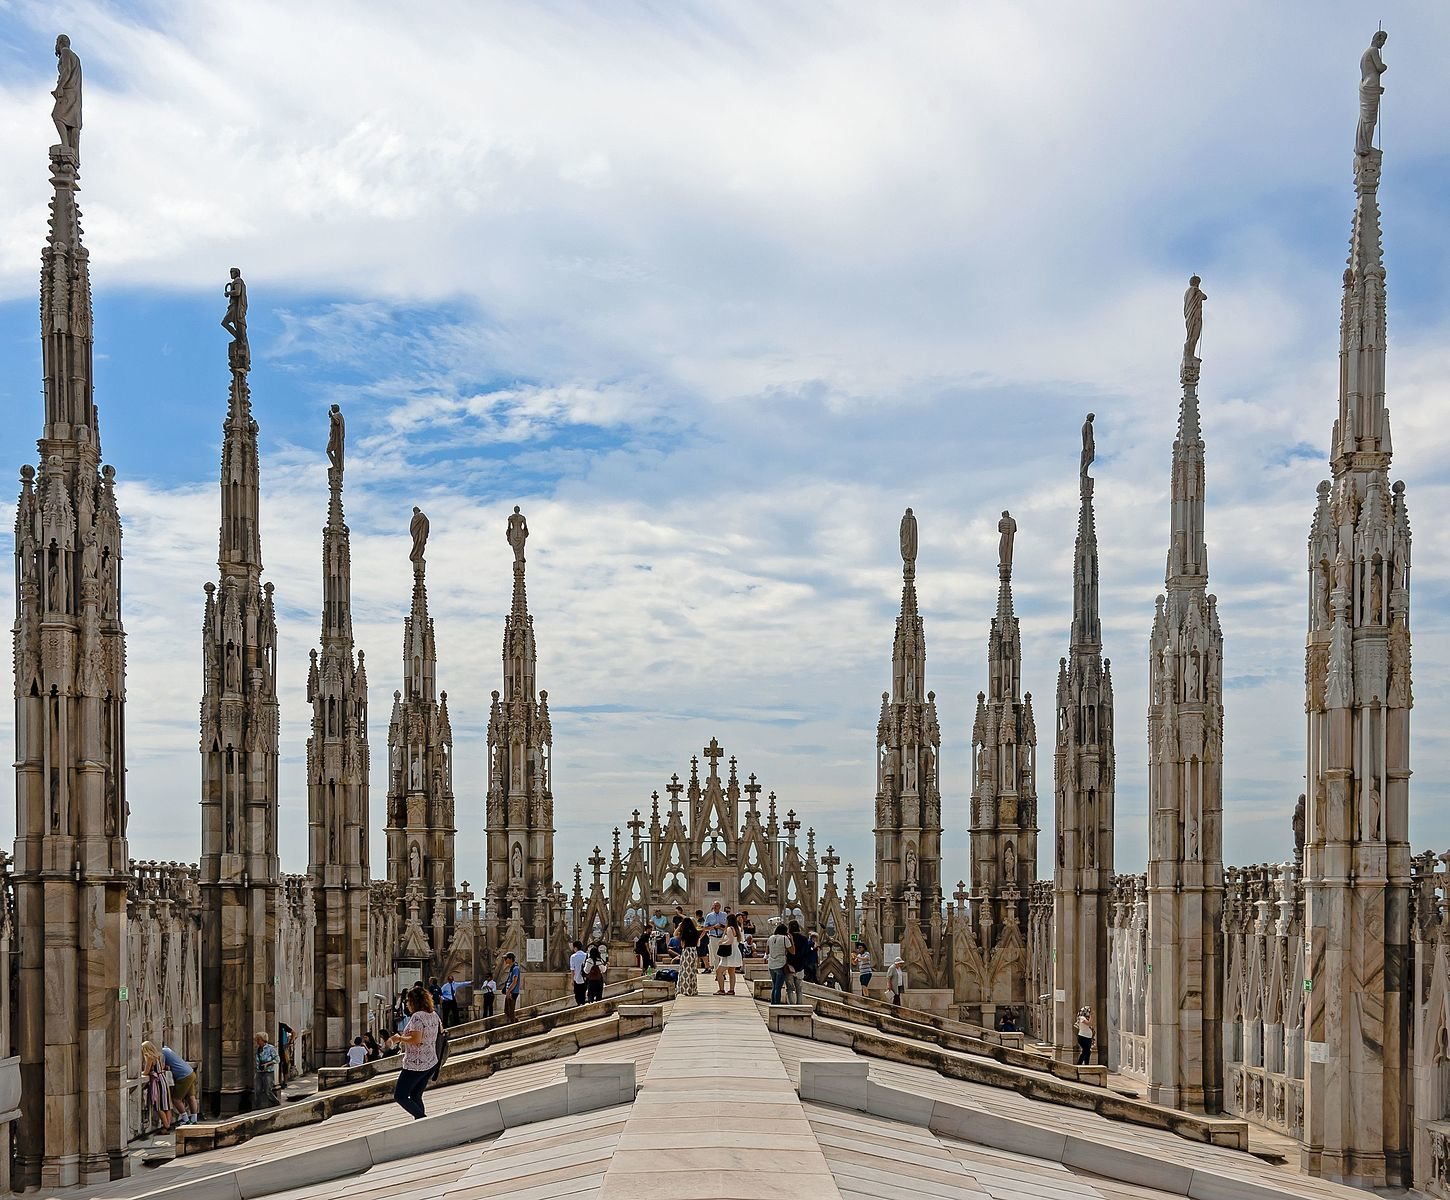 View from the Duomo di Milano rooftop